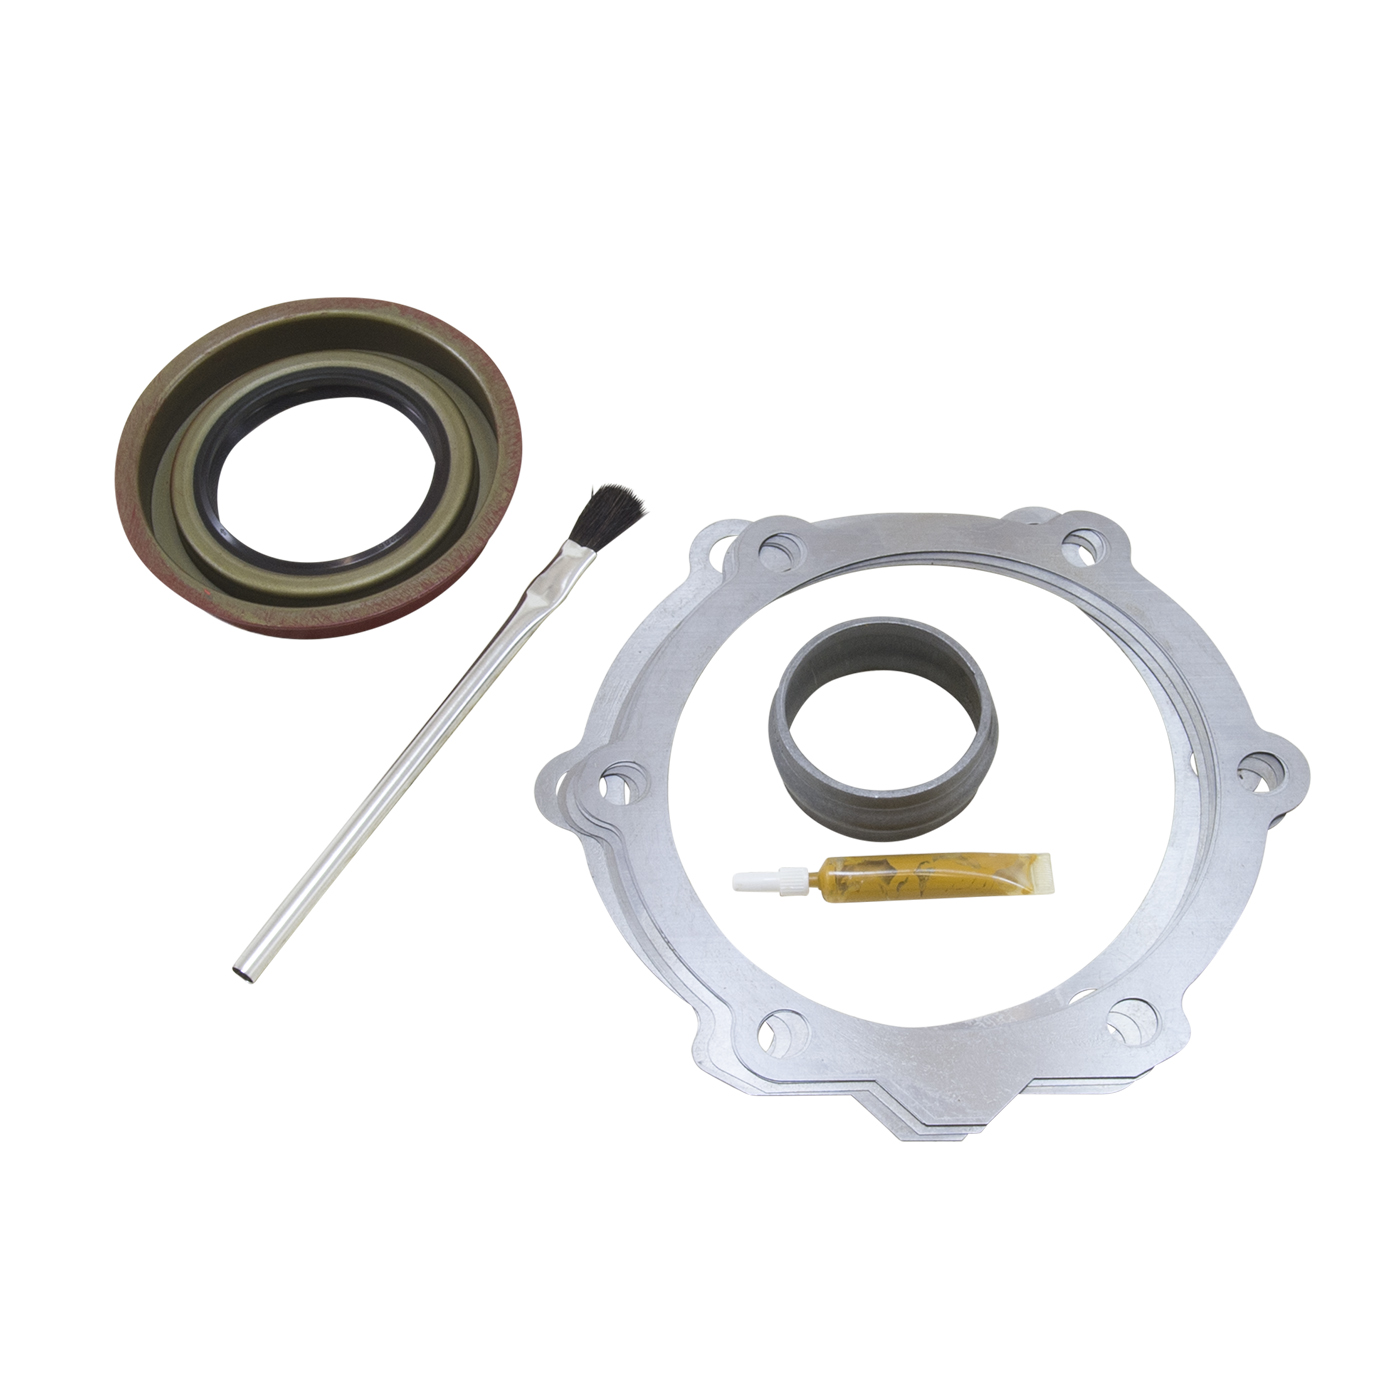 MK GM14T-A - Yukon Minor install kit for '87 & down 10.5